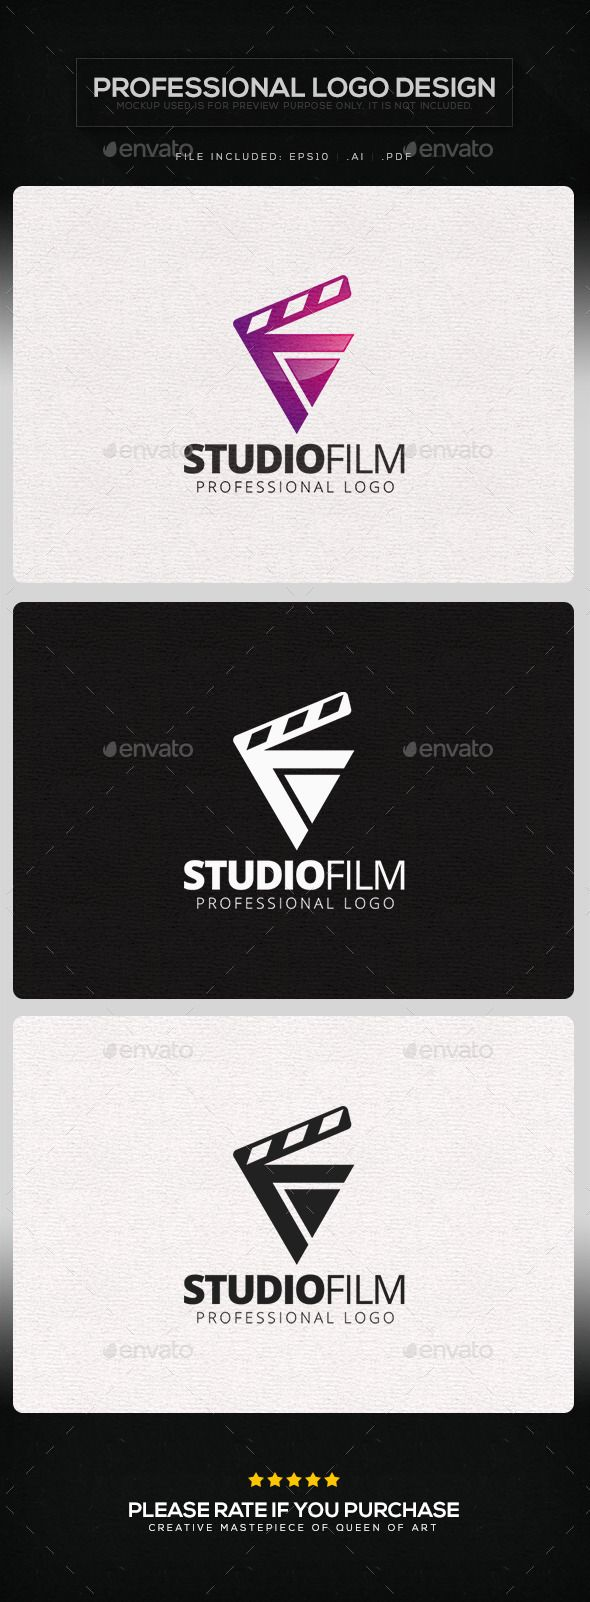 Studio Film  - Logo Design Template Vector #logotype Download it here: http://graphicriver.net/item/studio-film-logo-template/9755529?s_rank=1081?ref=nesto